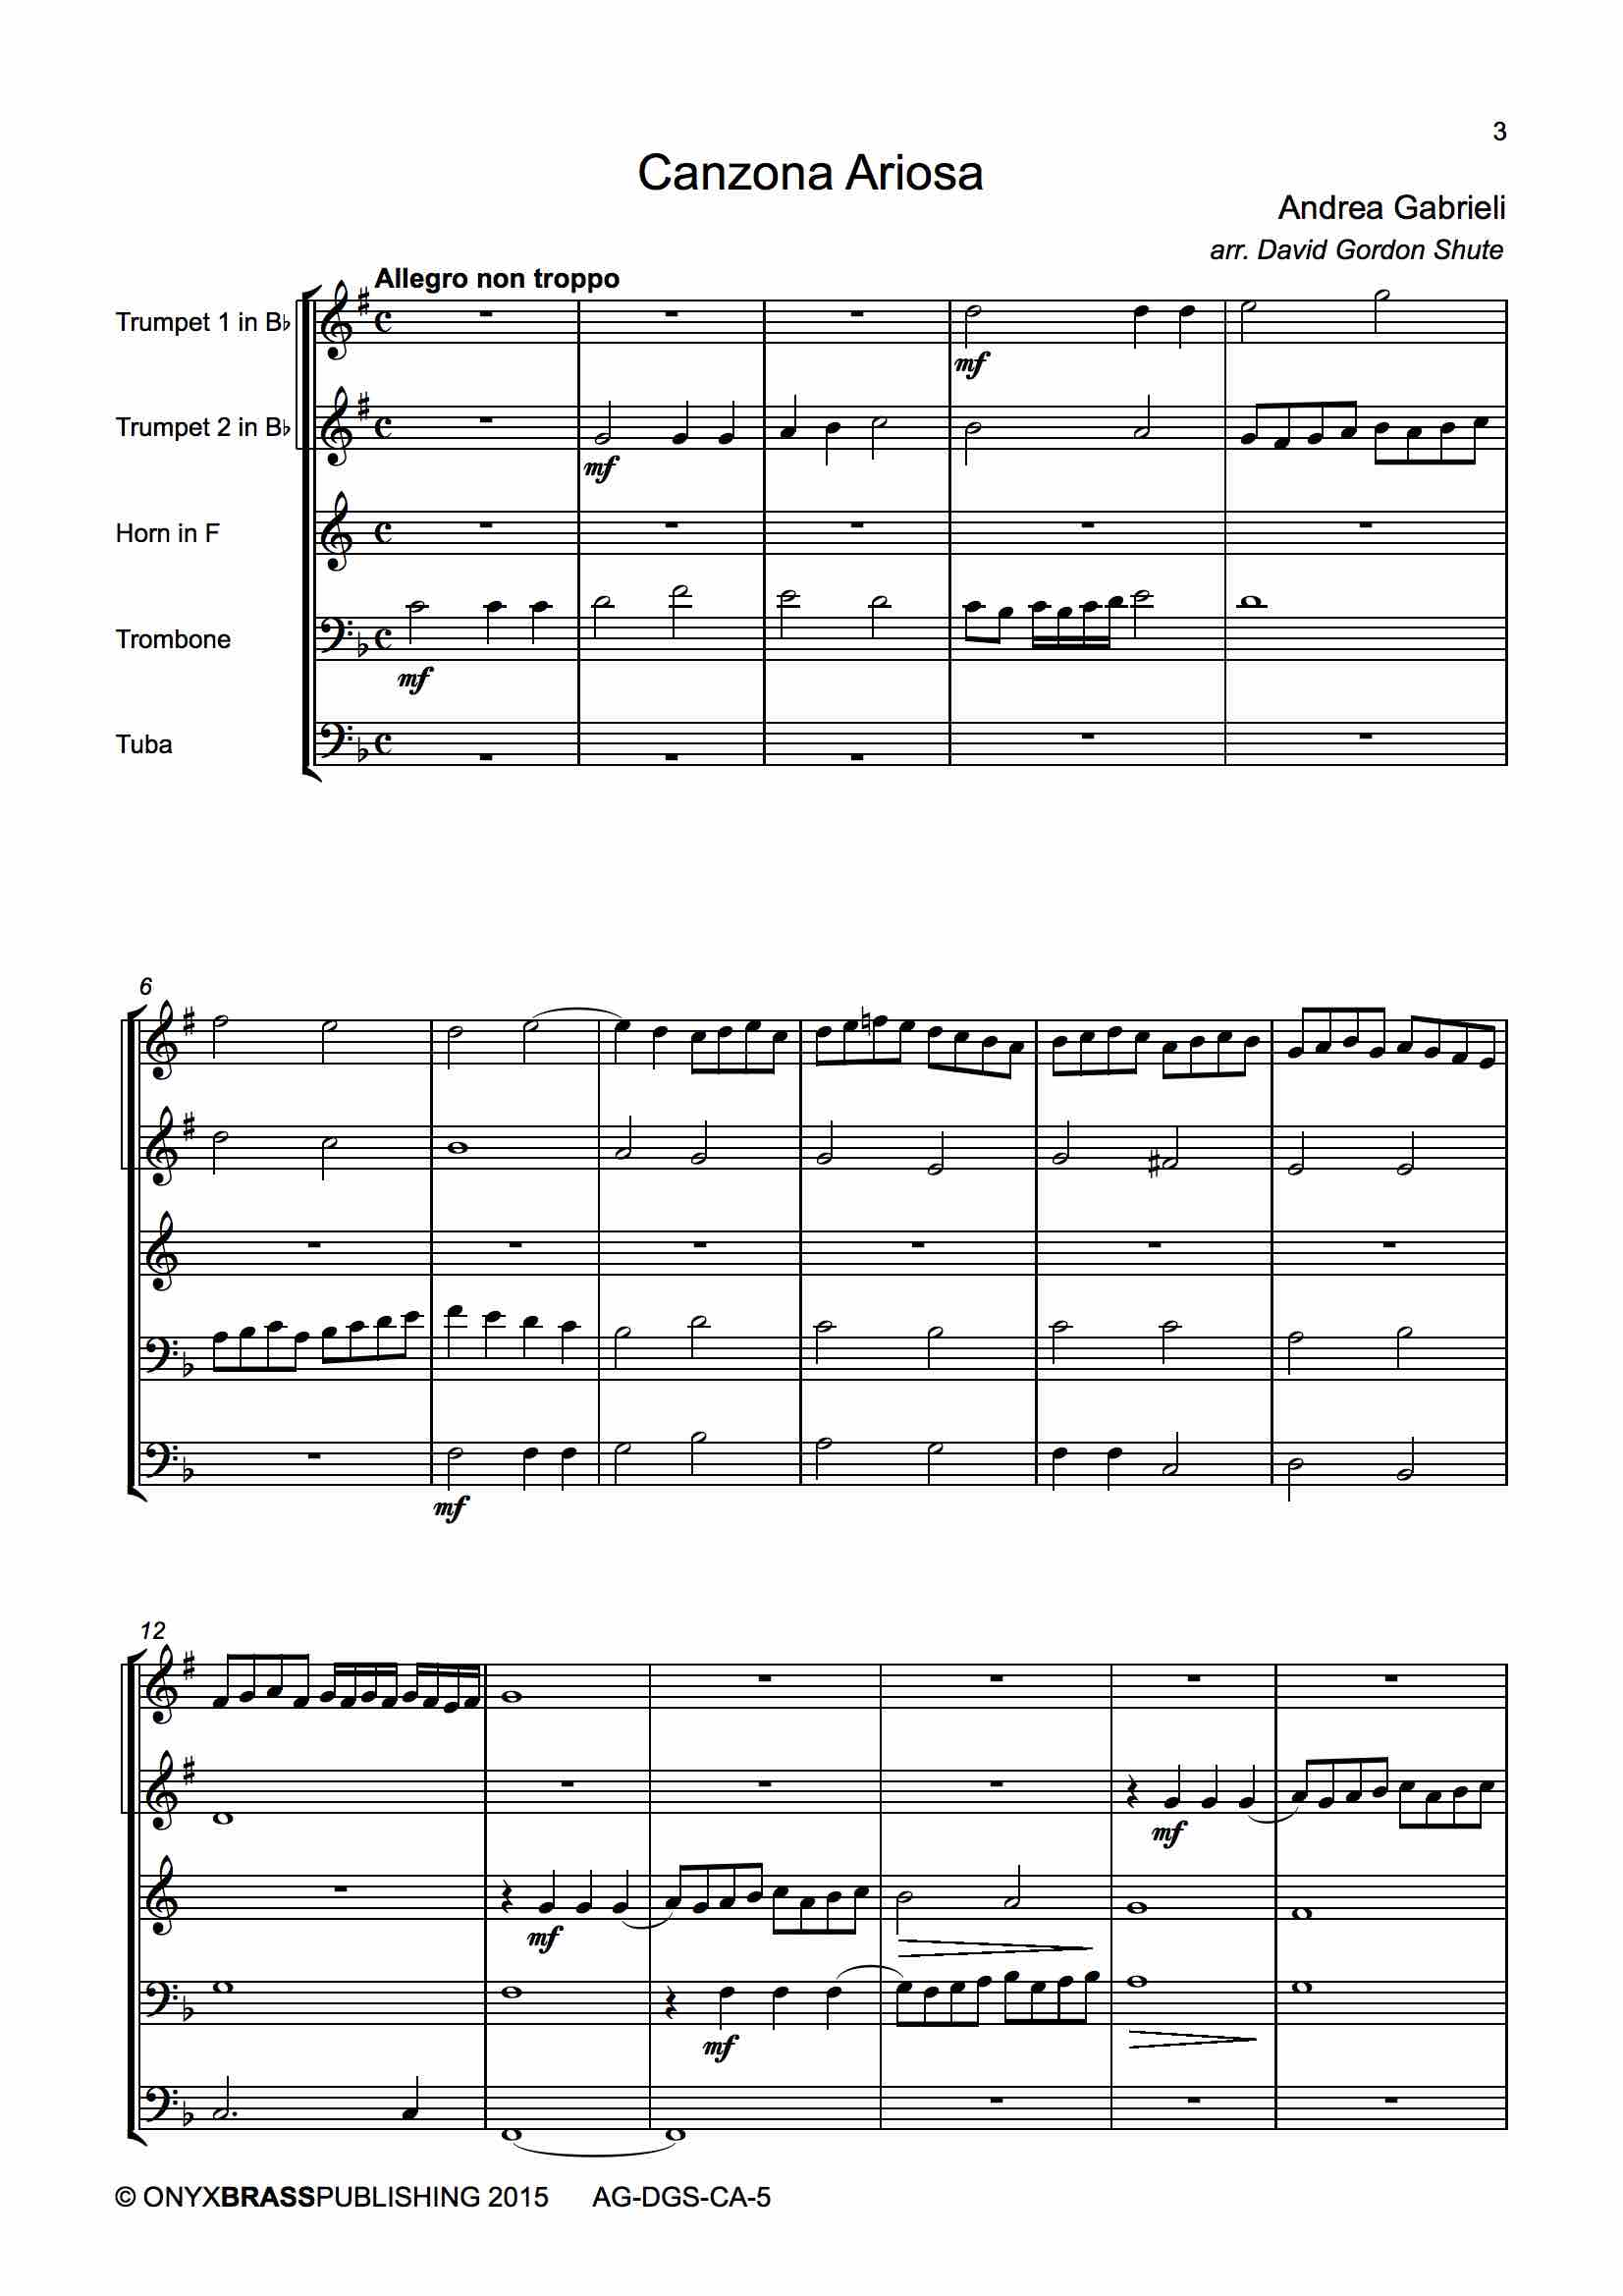 Canzona Ariosa - example page